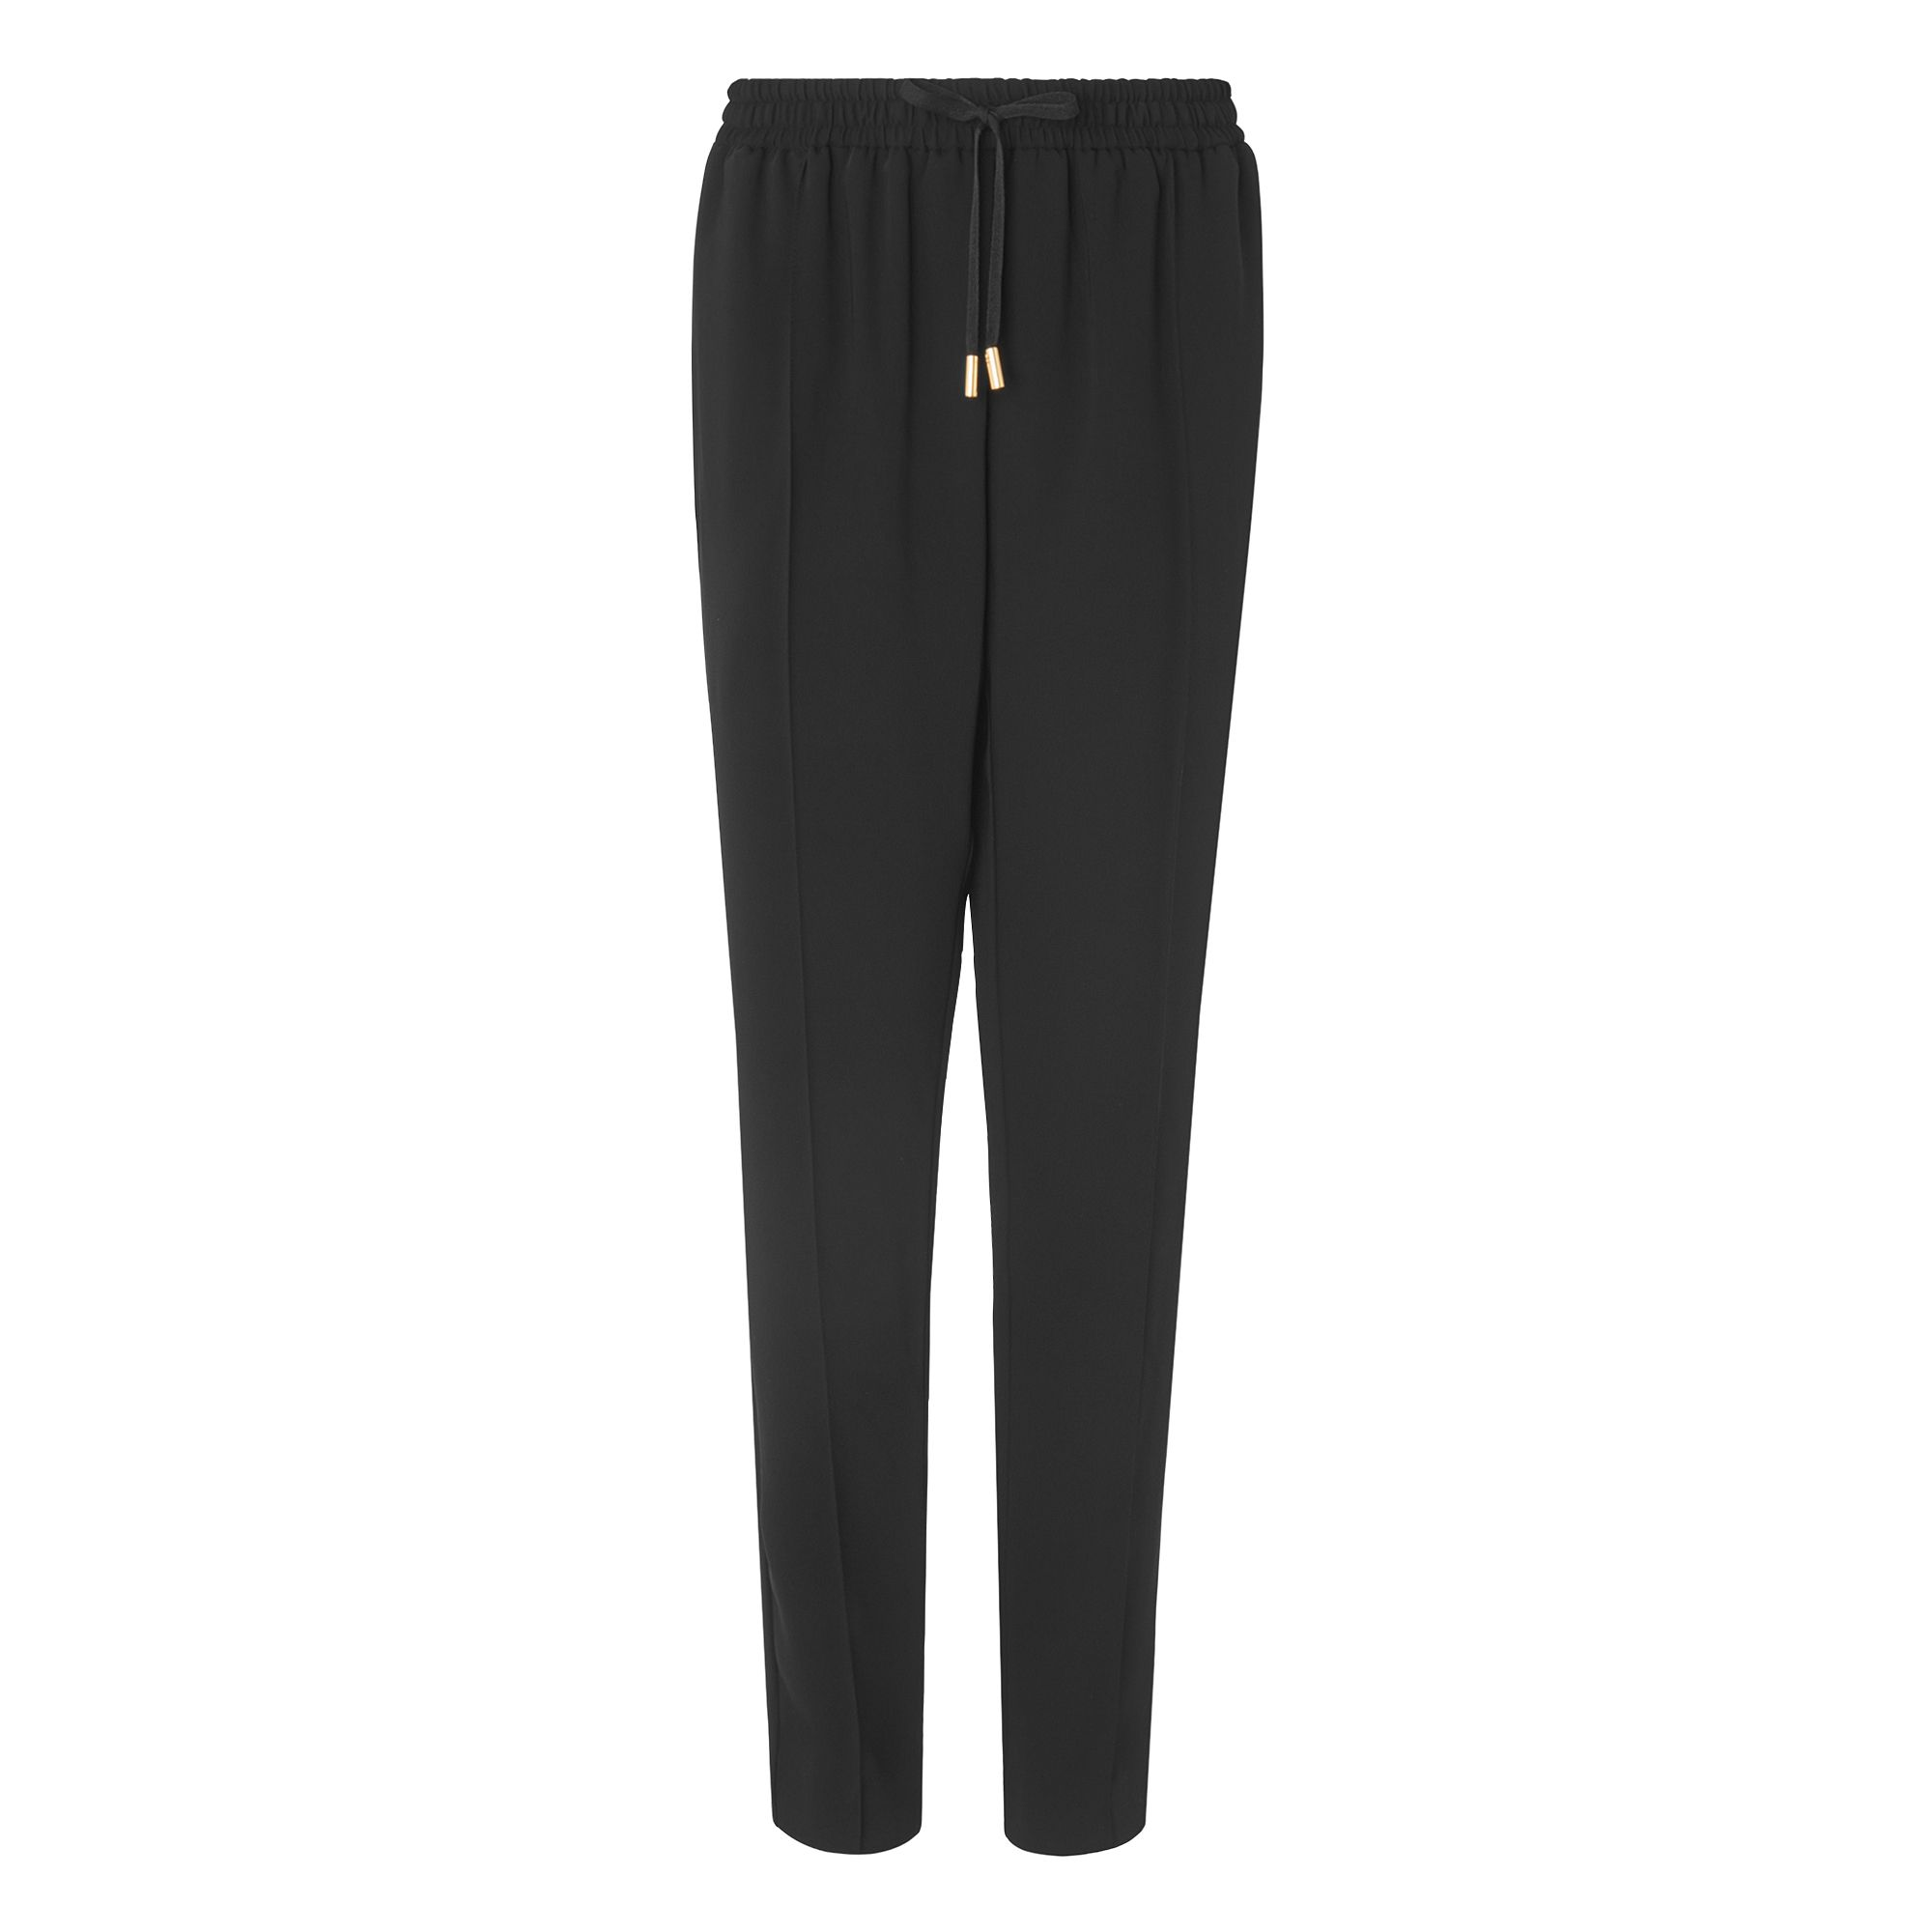 L.K. Bennett Hilly Drawstring Trousers, Black